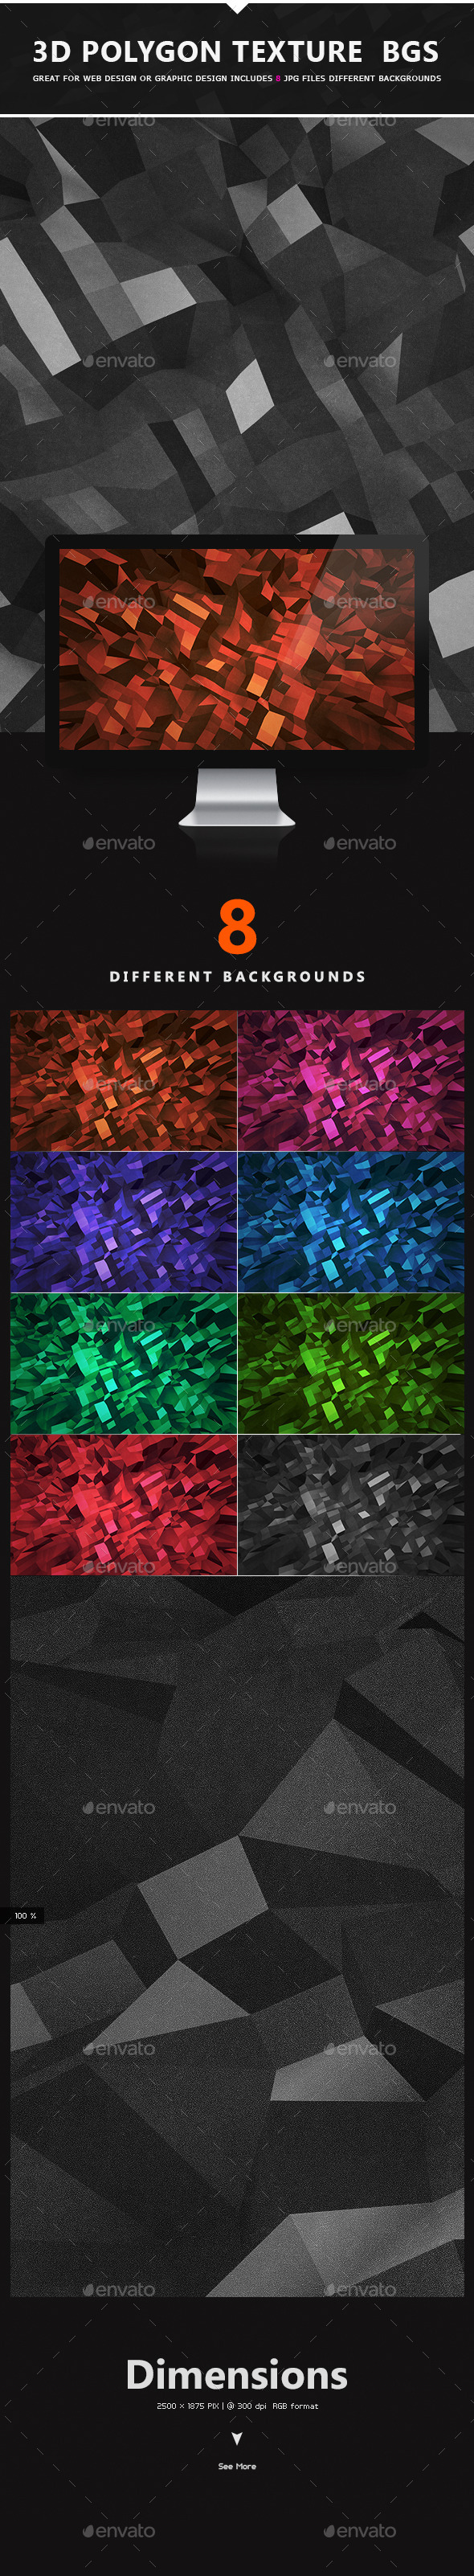 3D Polygon Texture Backgrounds - Abstract Backgrounds